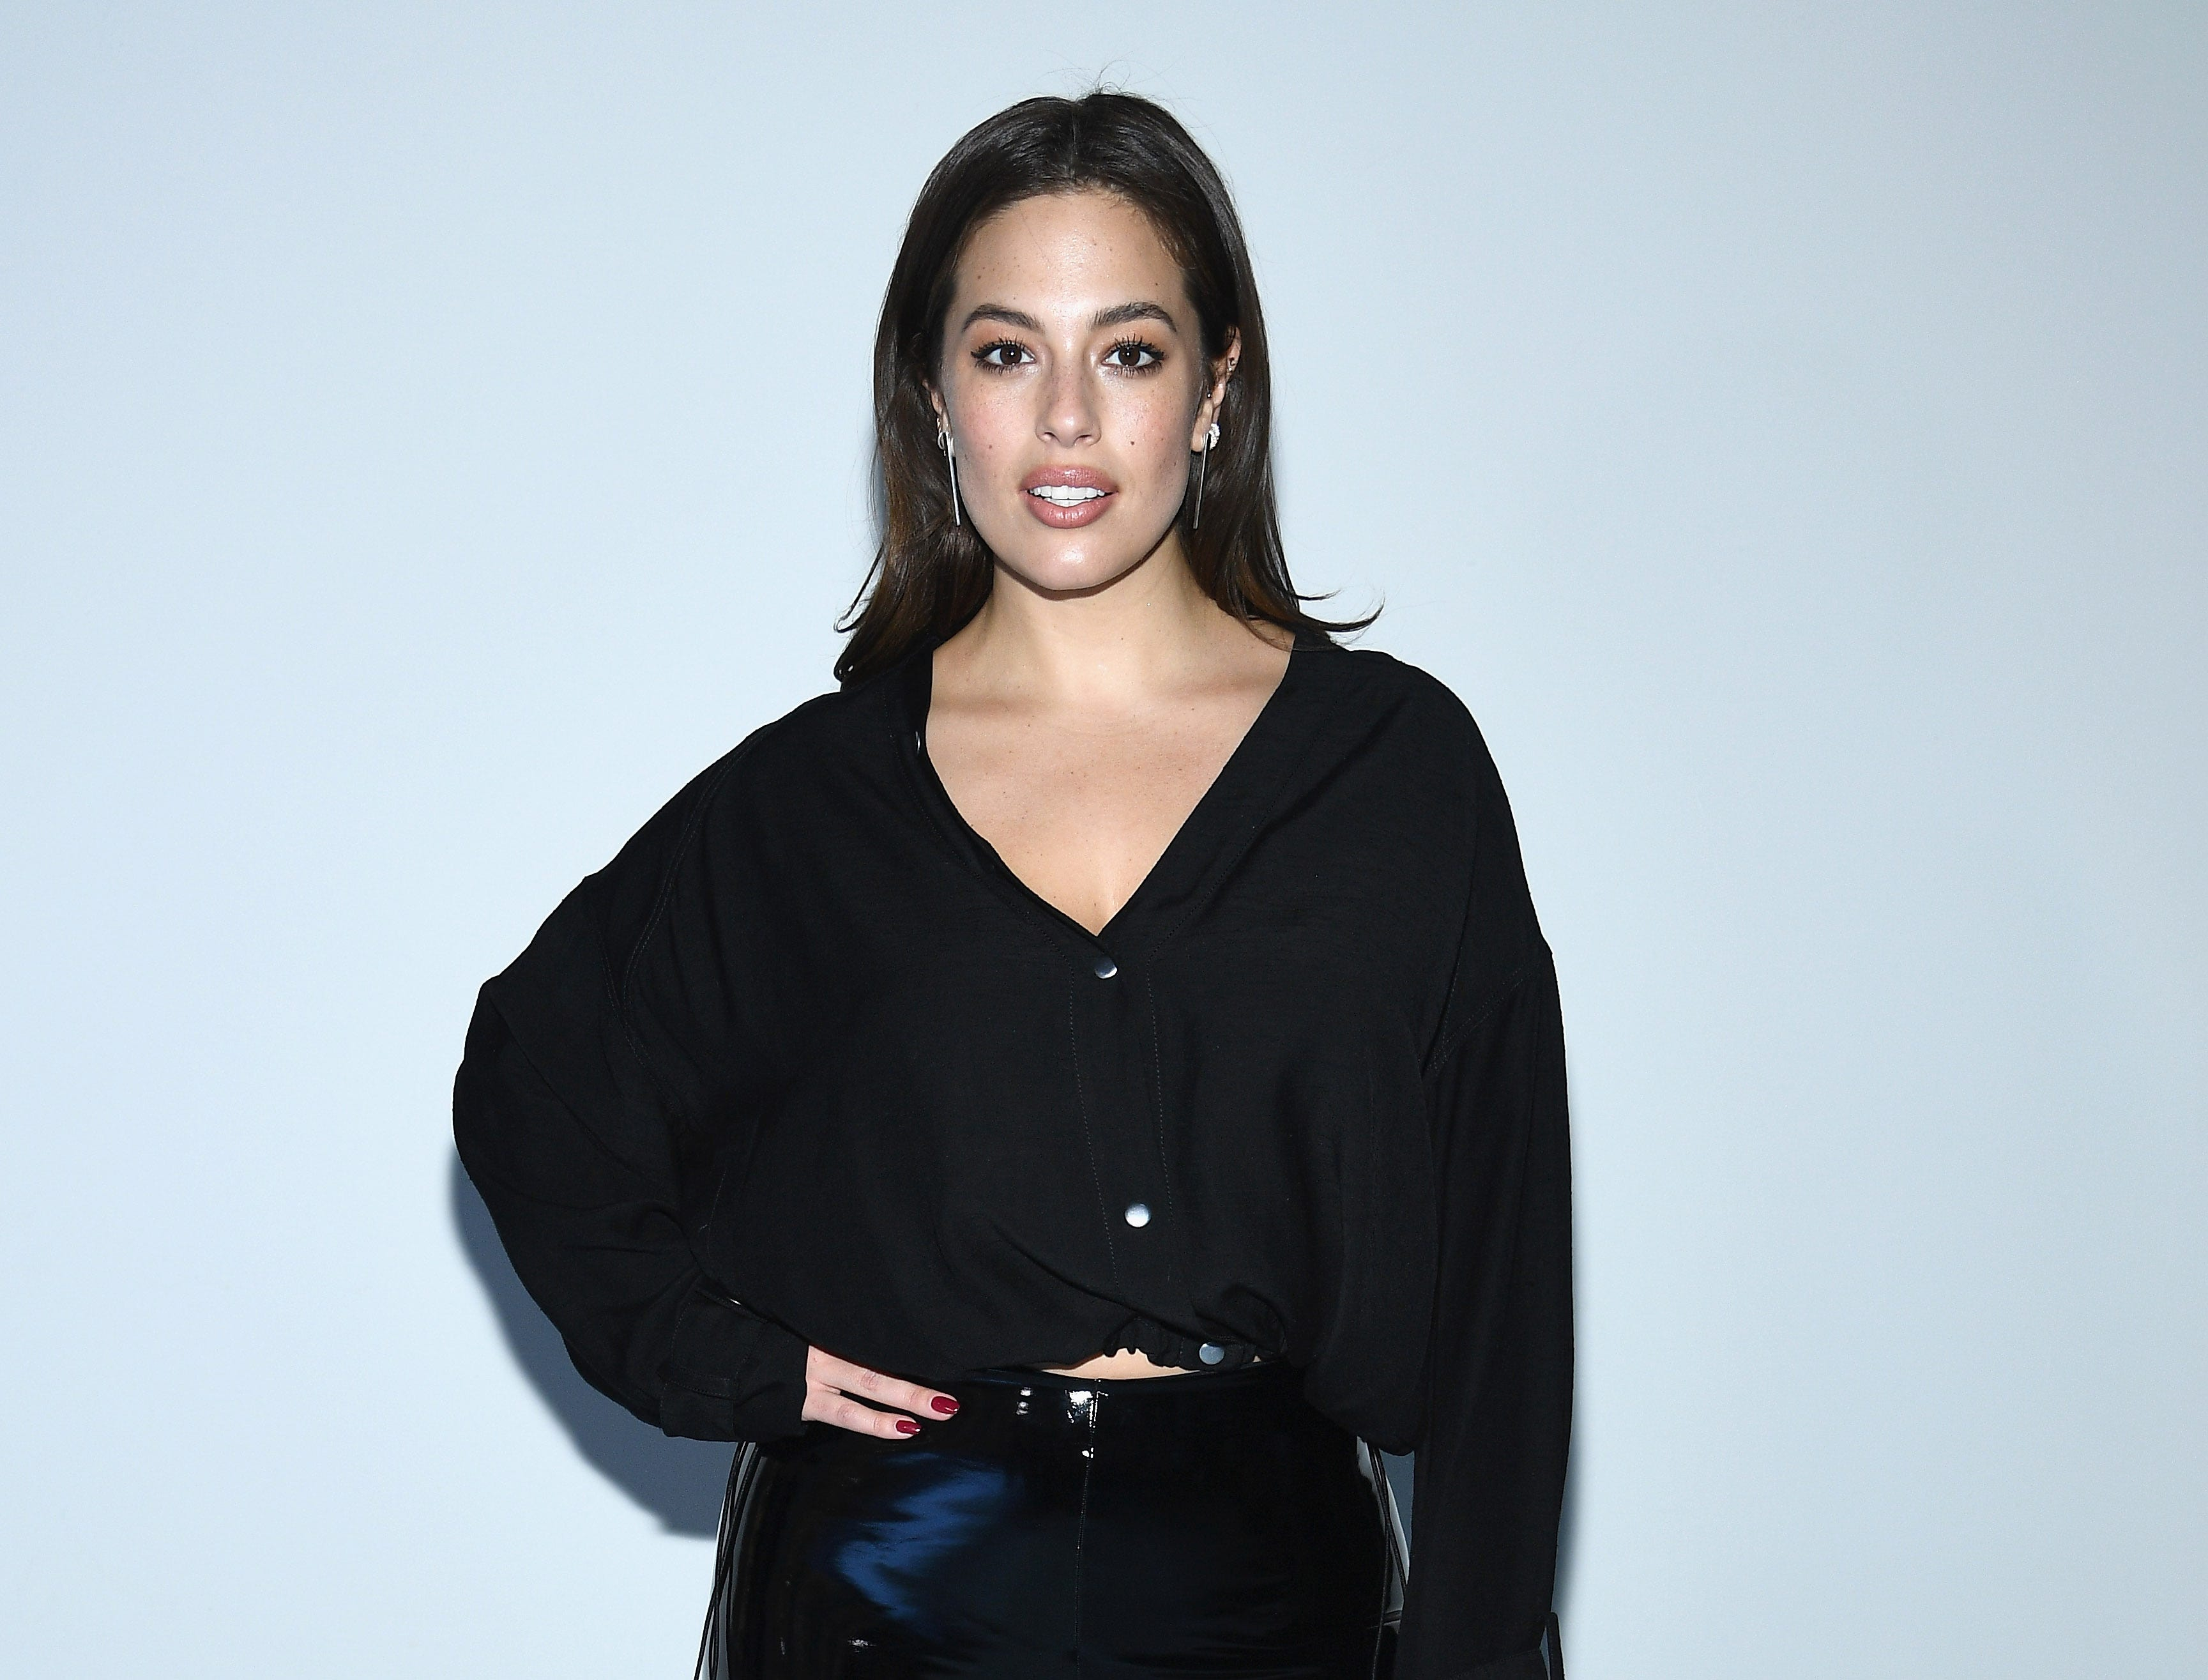 NEW YORK, NY - FEBRUARY 11:  Model Ashley Graham attends the 3.1 Phillip Lim Fashion Show during New York Fashion Week at Center 415 on February 11, 2019 in New York City.  (Photo by Dimitrios Kambouris/Getty Images) ORG XMIT: 775290923 ORIG FILE ID: 1097943634